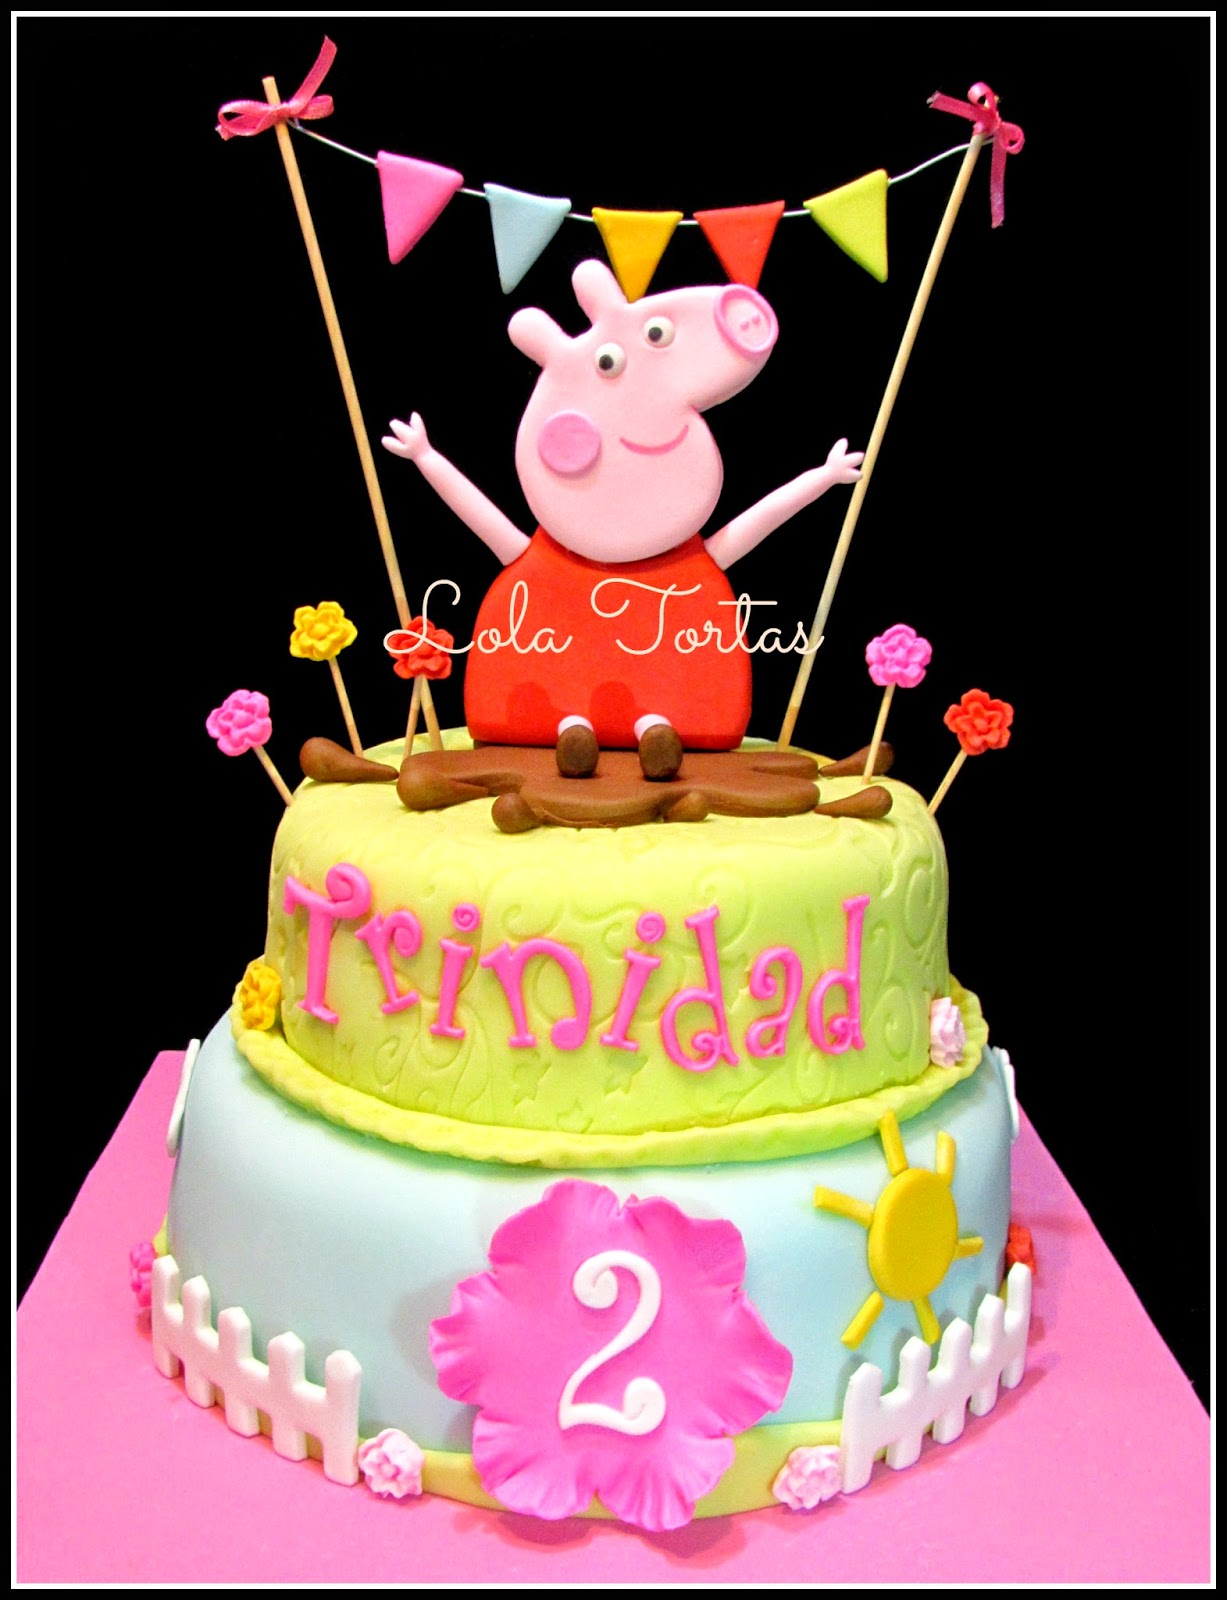 1000+ images about My cakes on Pinterest Peppa pig cakes